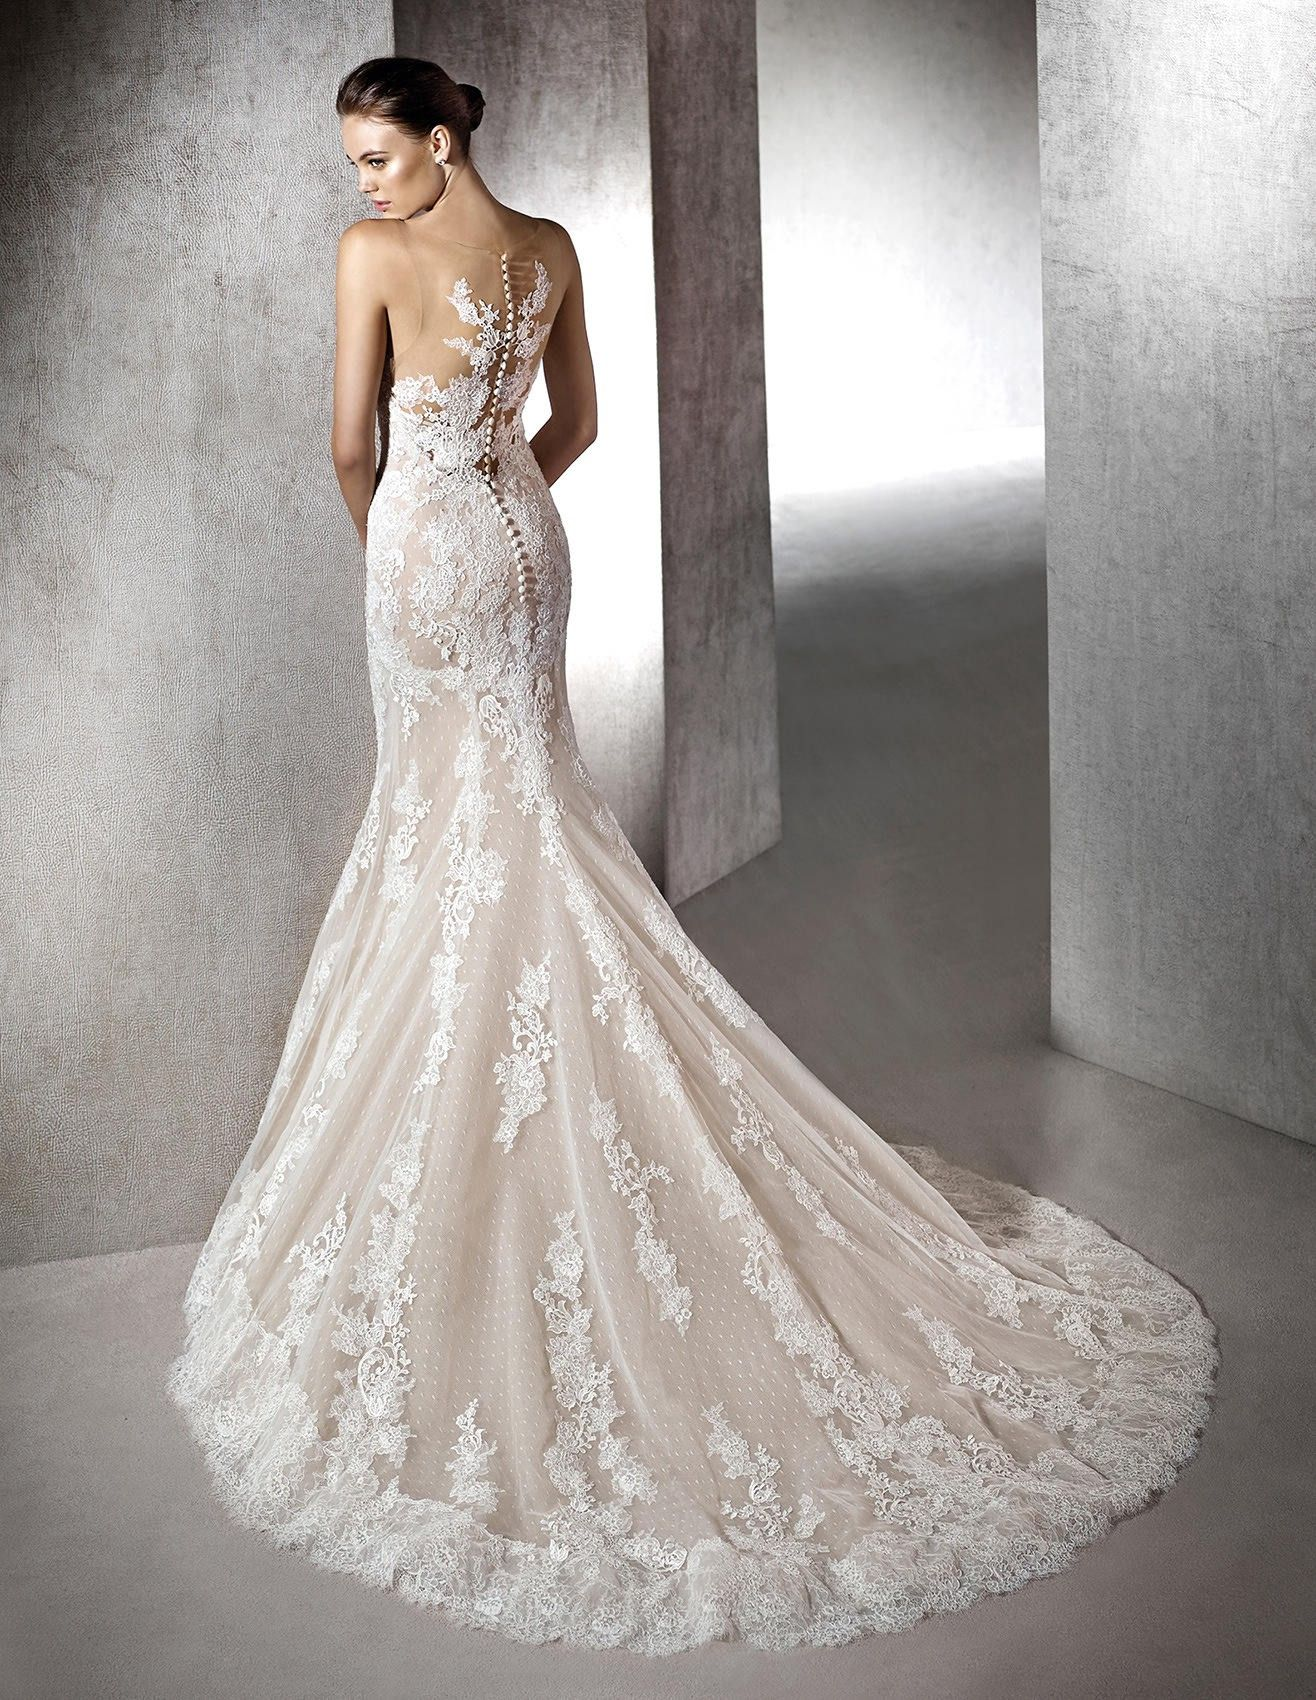 20 Miracle Mile Miami Wedding Dresses For Fall Check More At Http Svesty